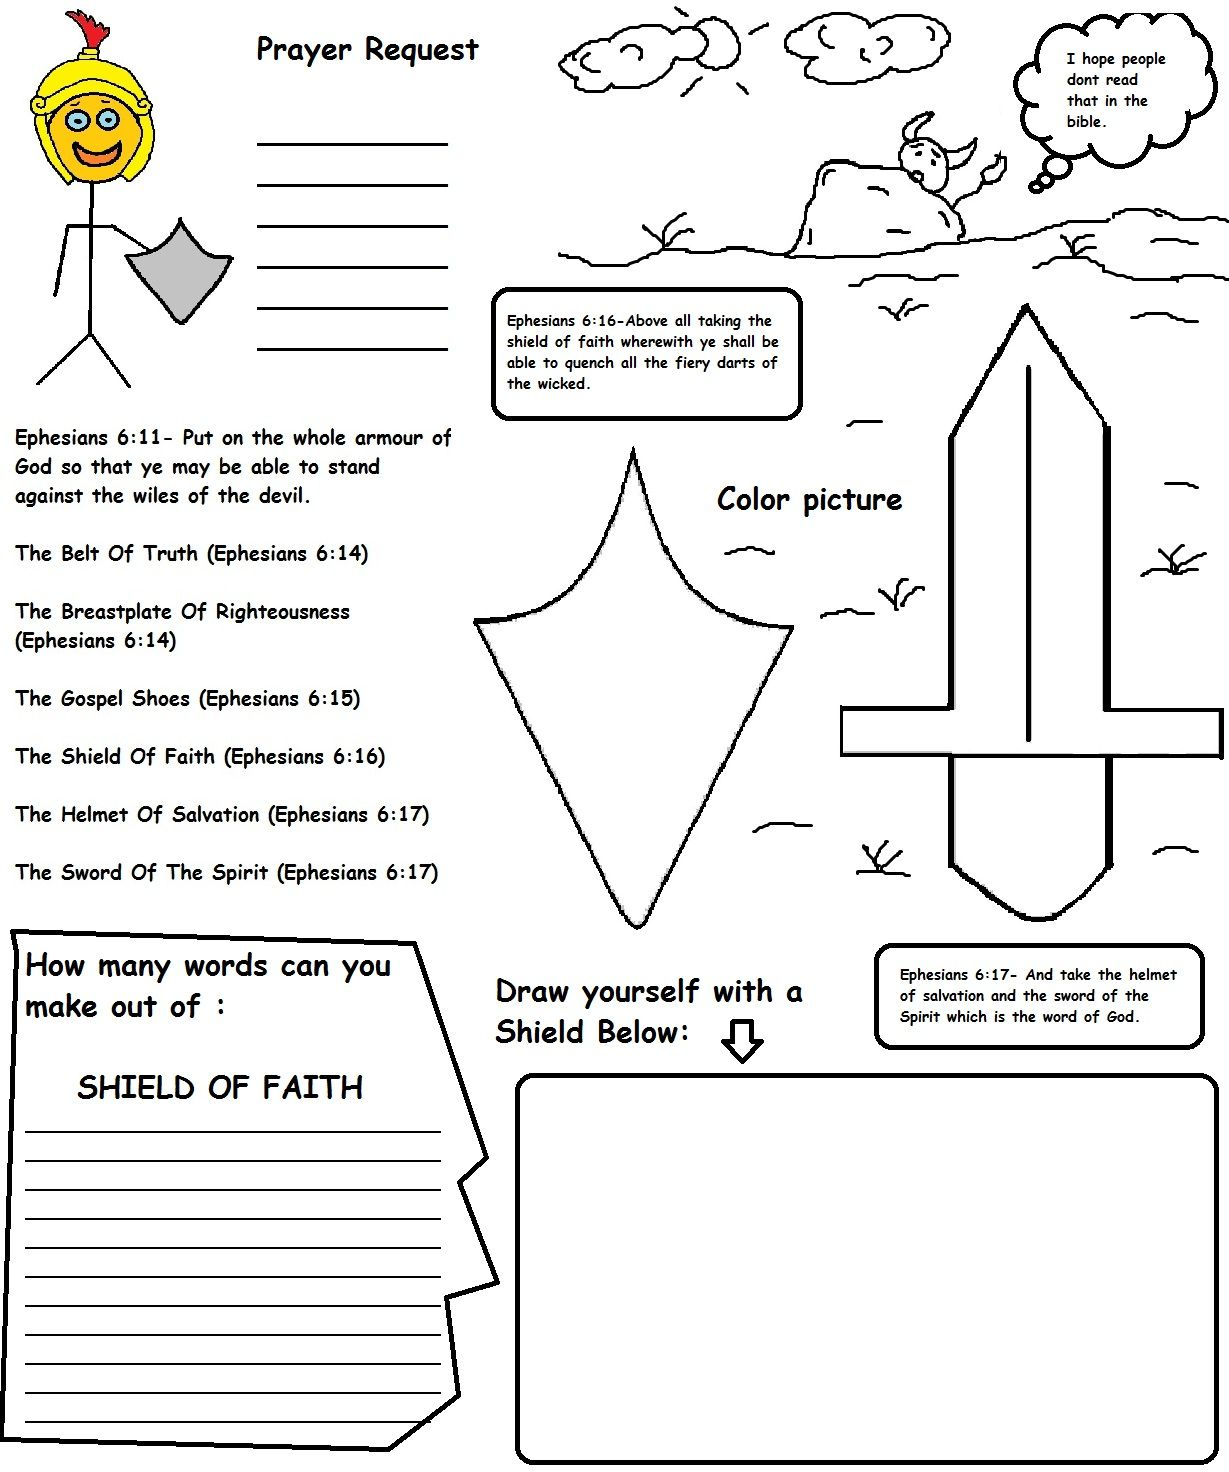 Pin by Elisabeth Kisselstein on Children's Ministry Resources